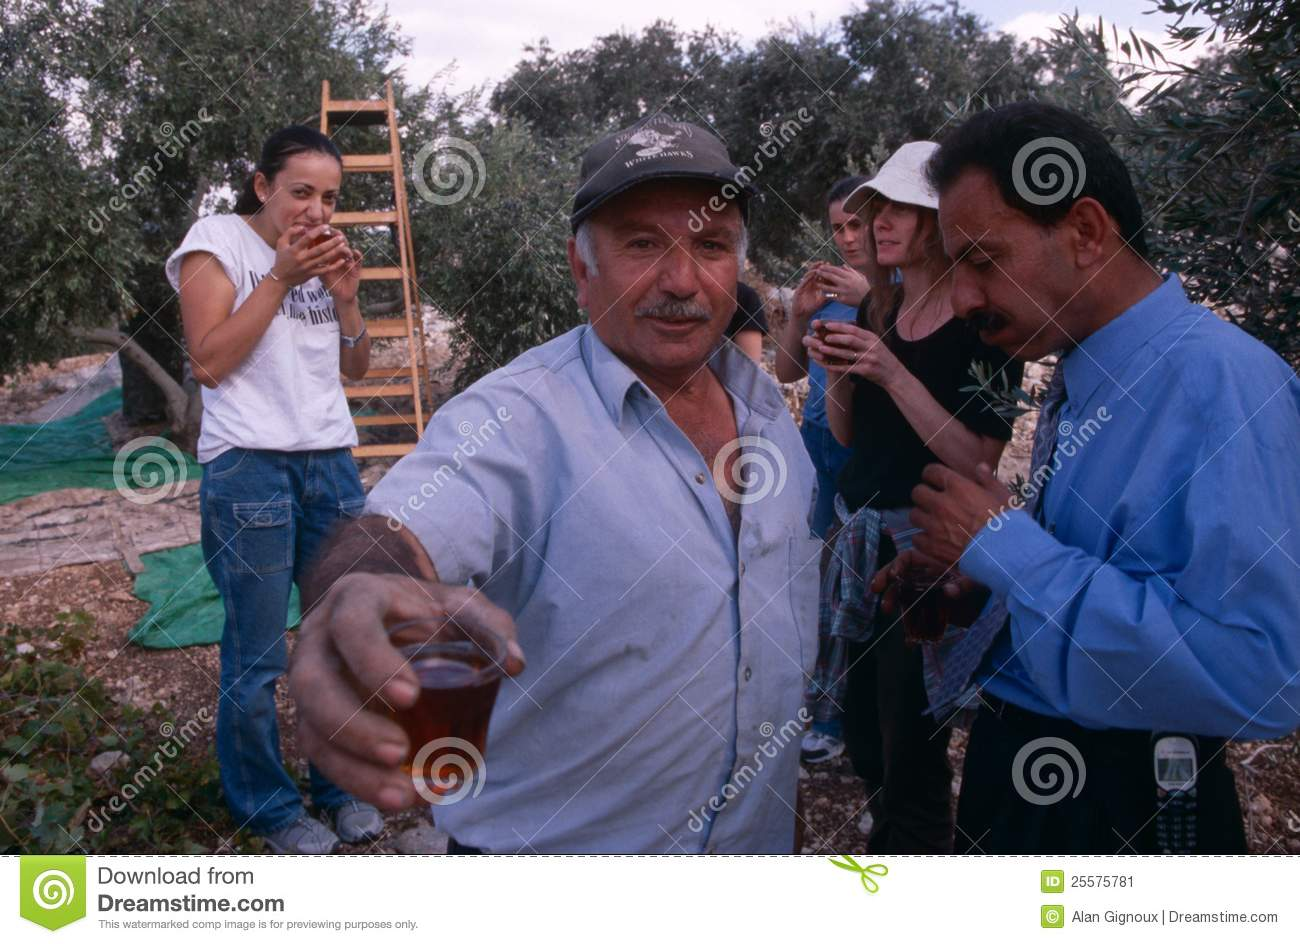 ISM volunteers and Palestinian workers in an olive grove, Palestine.